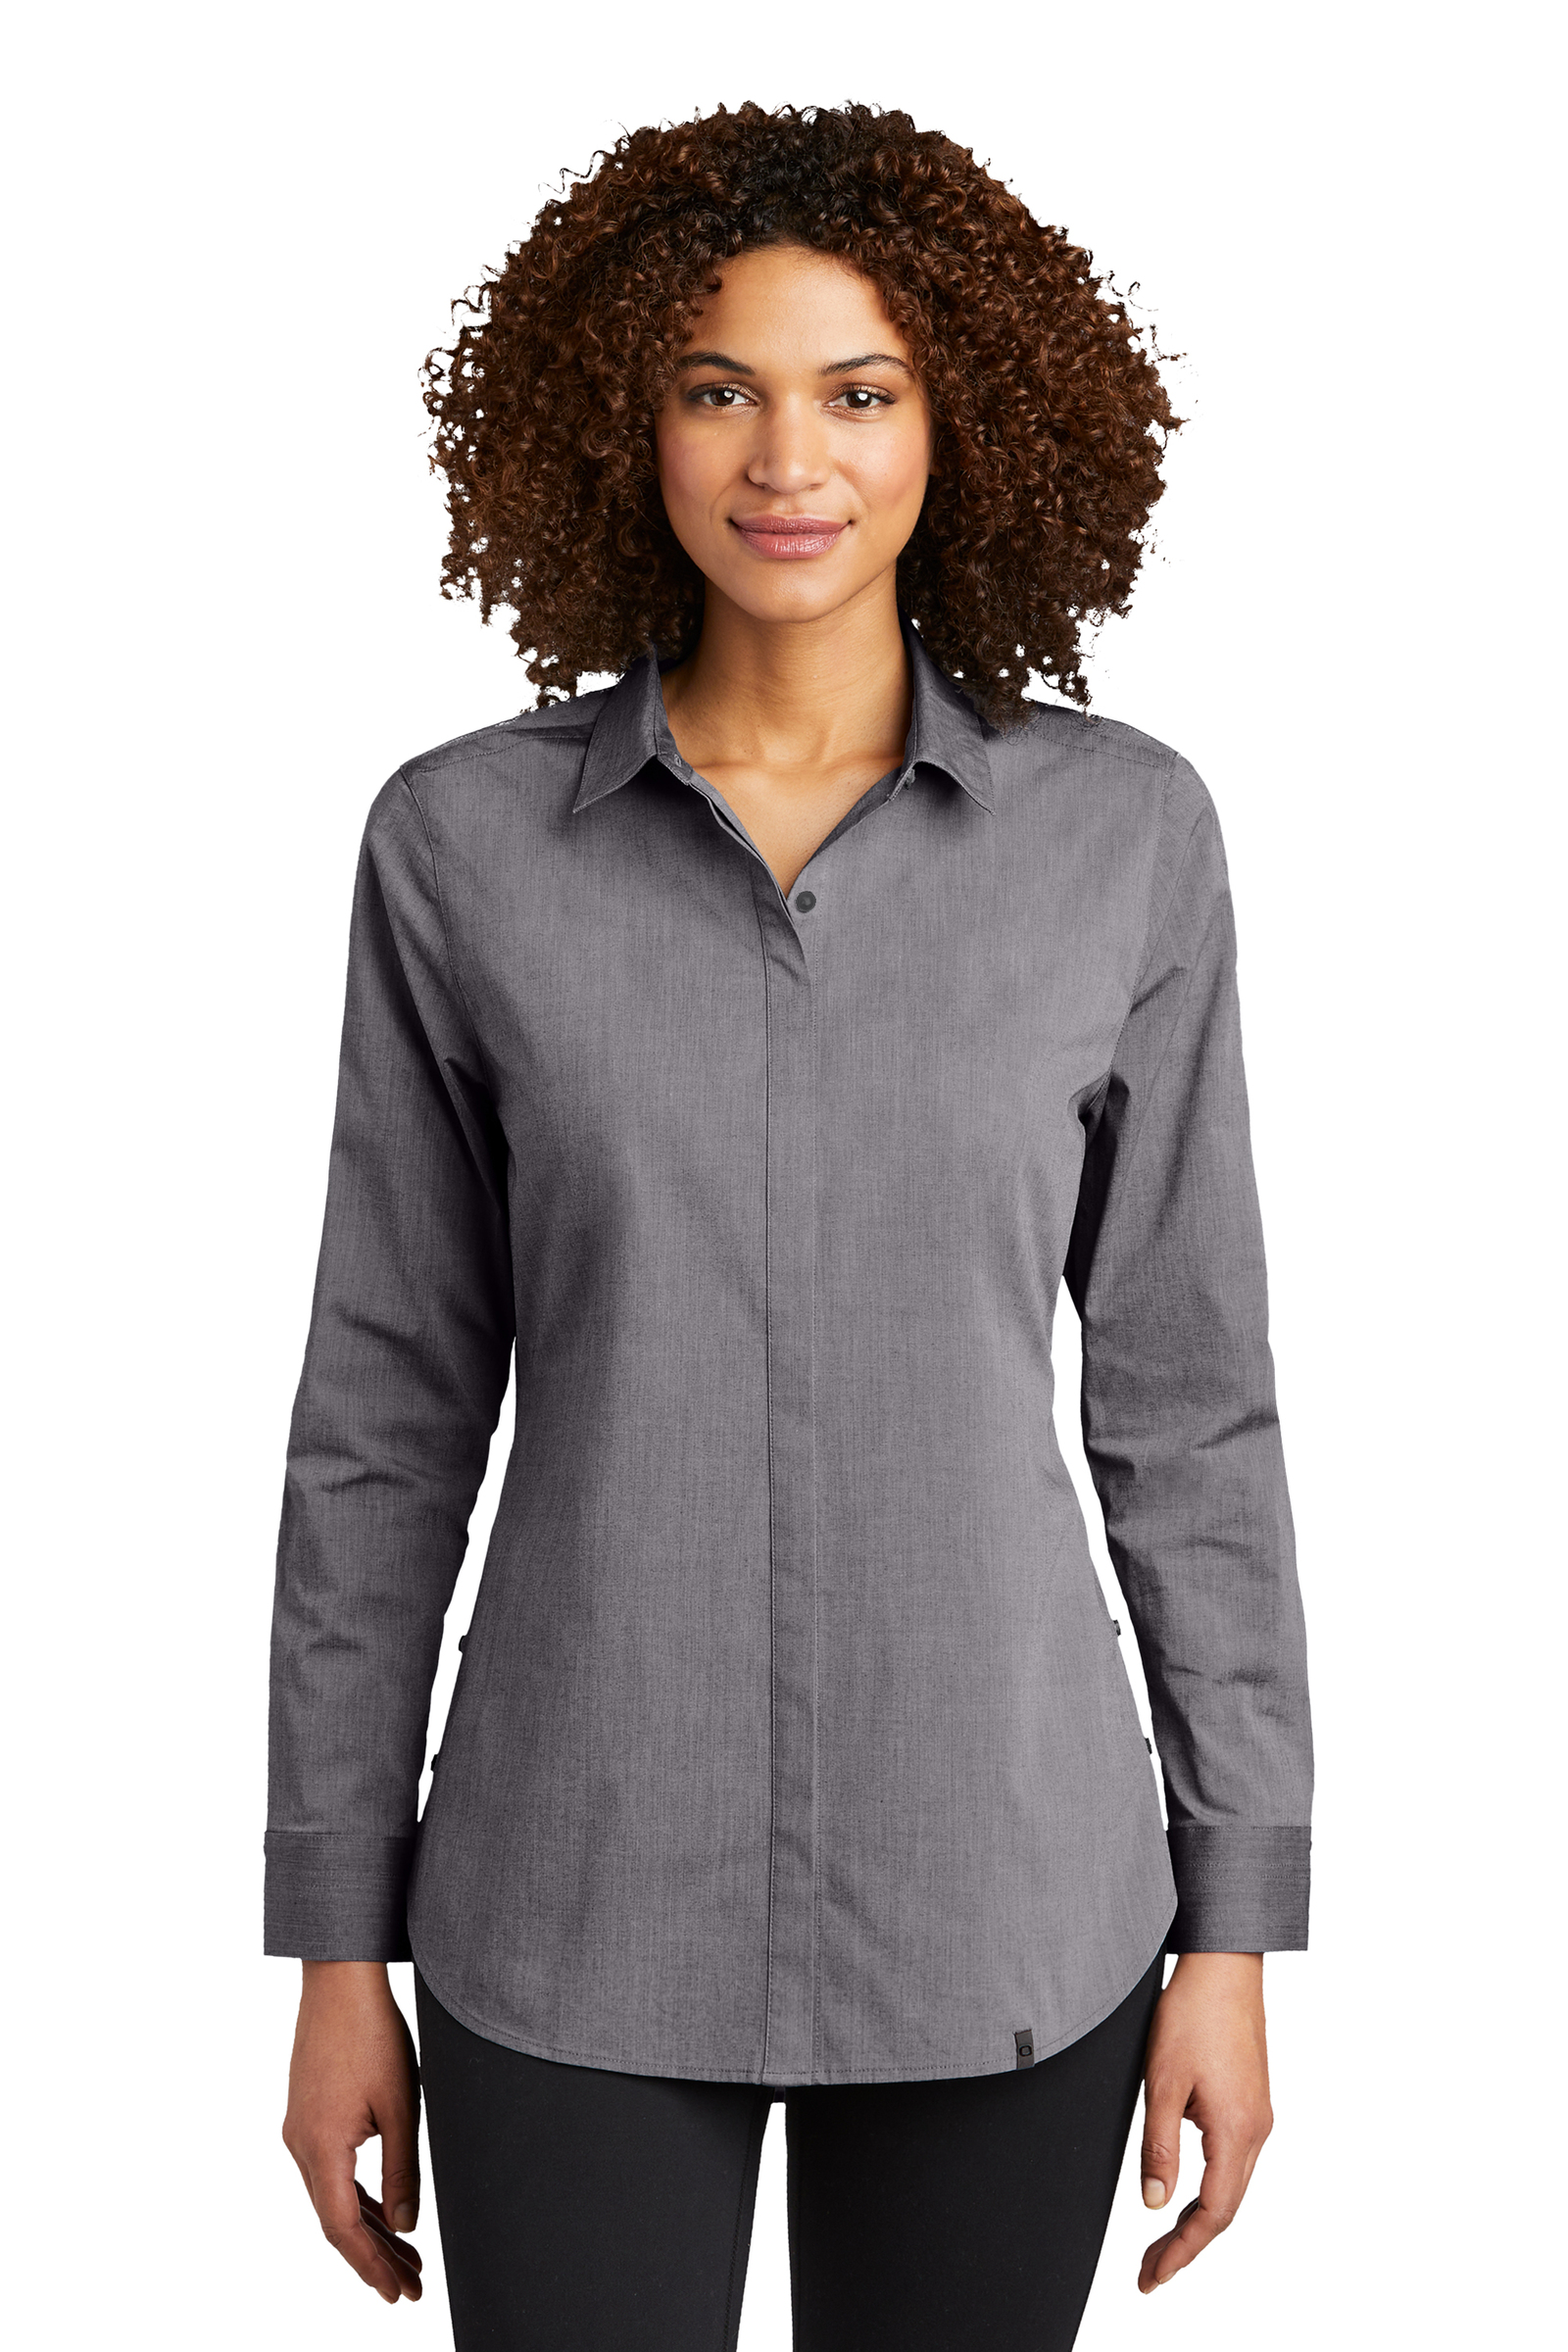 OGIO Embroidered Women's Commuter Woven Tunic